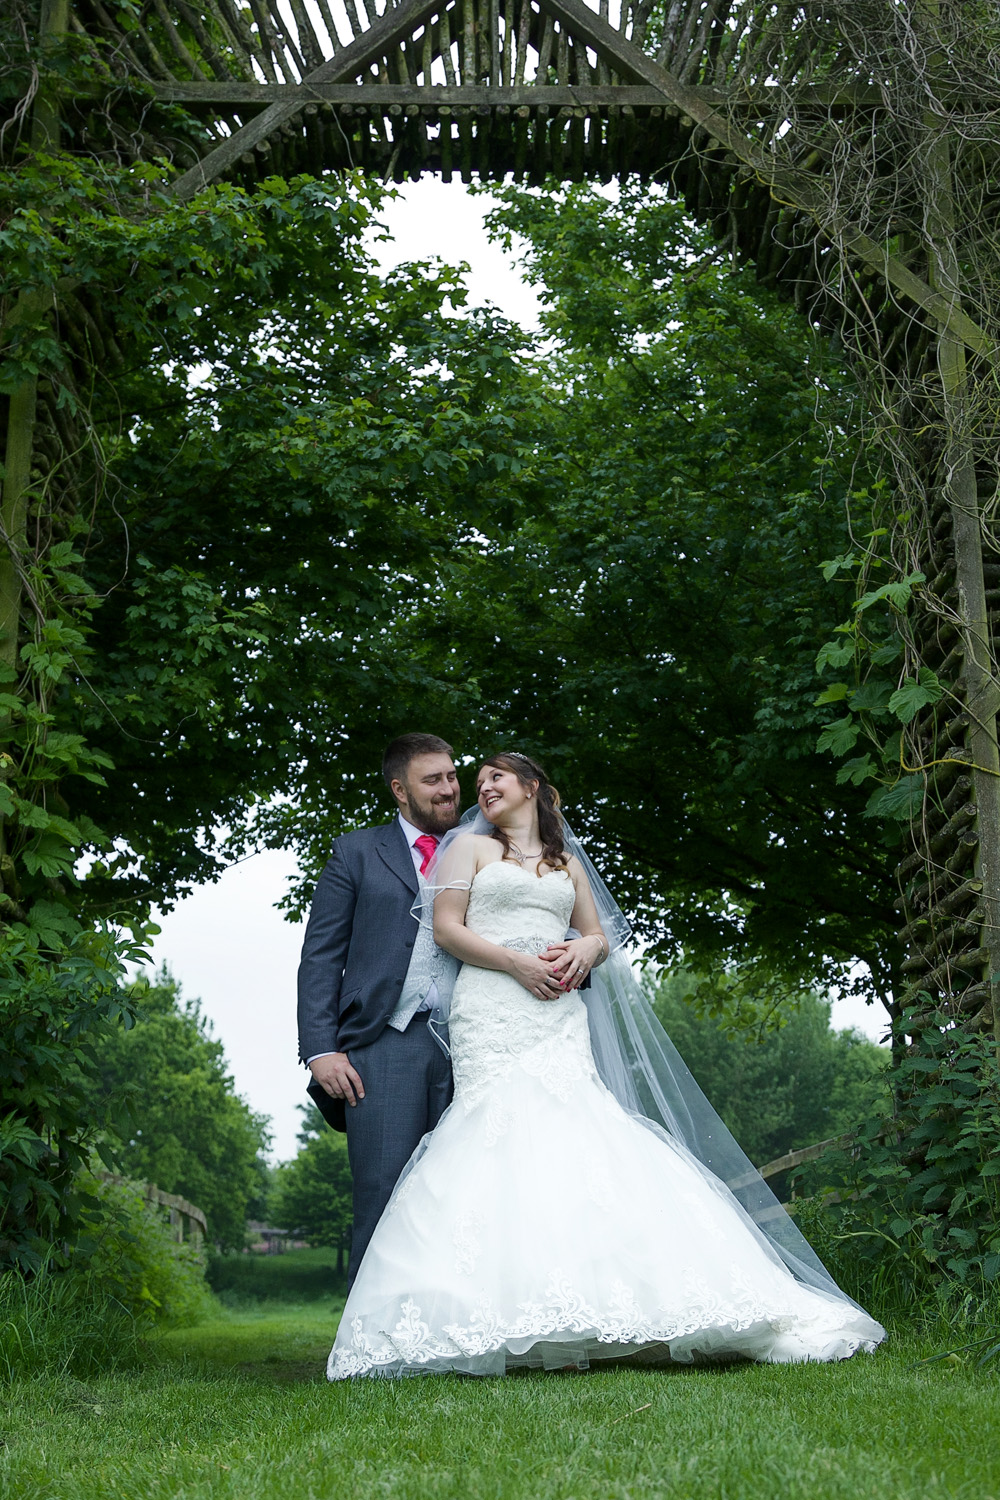 Sheepdrove_Eco_Centre_Wedding_Photographer_Hungerford_Berkshire_012.jpg